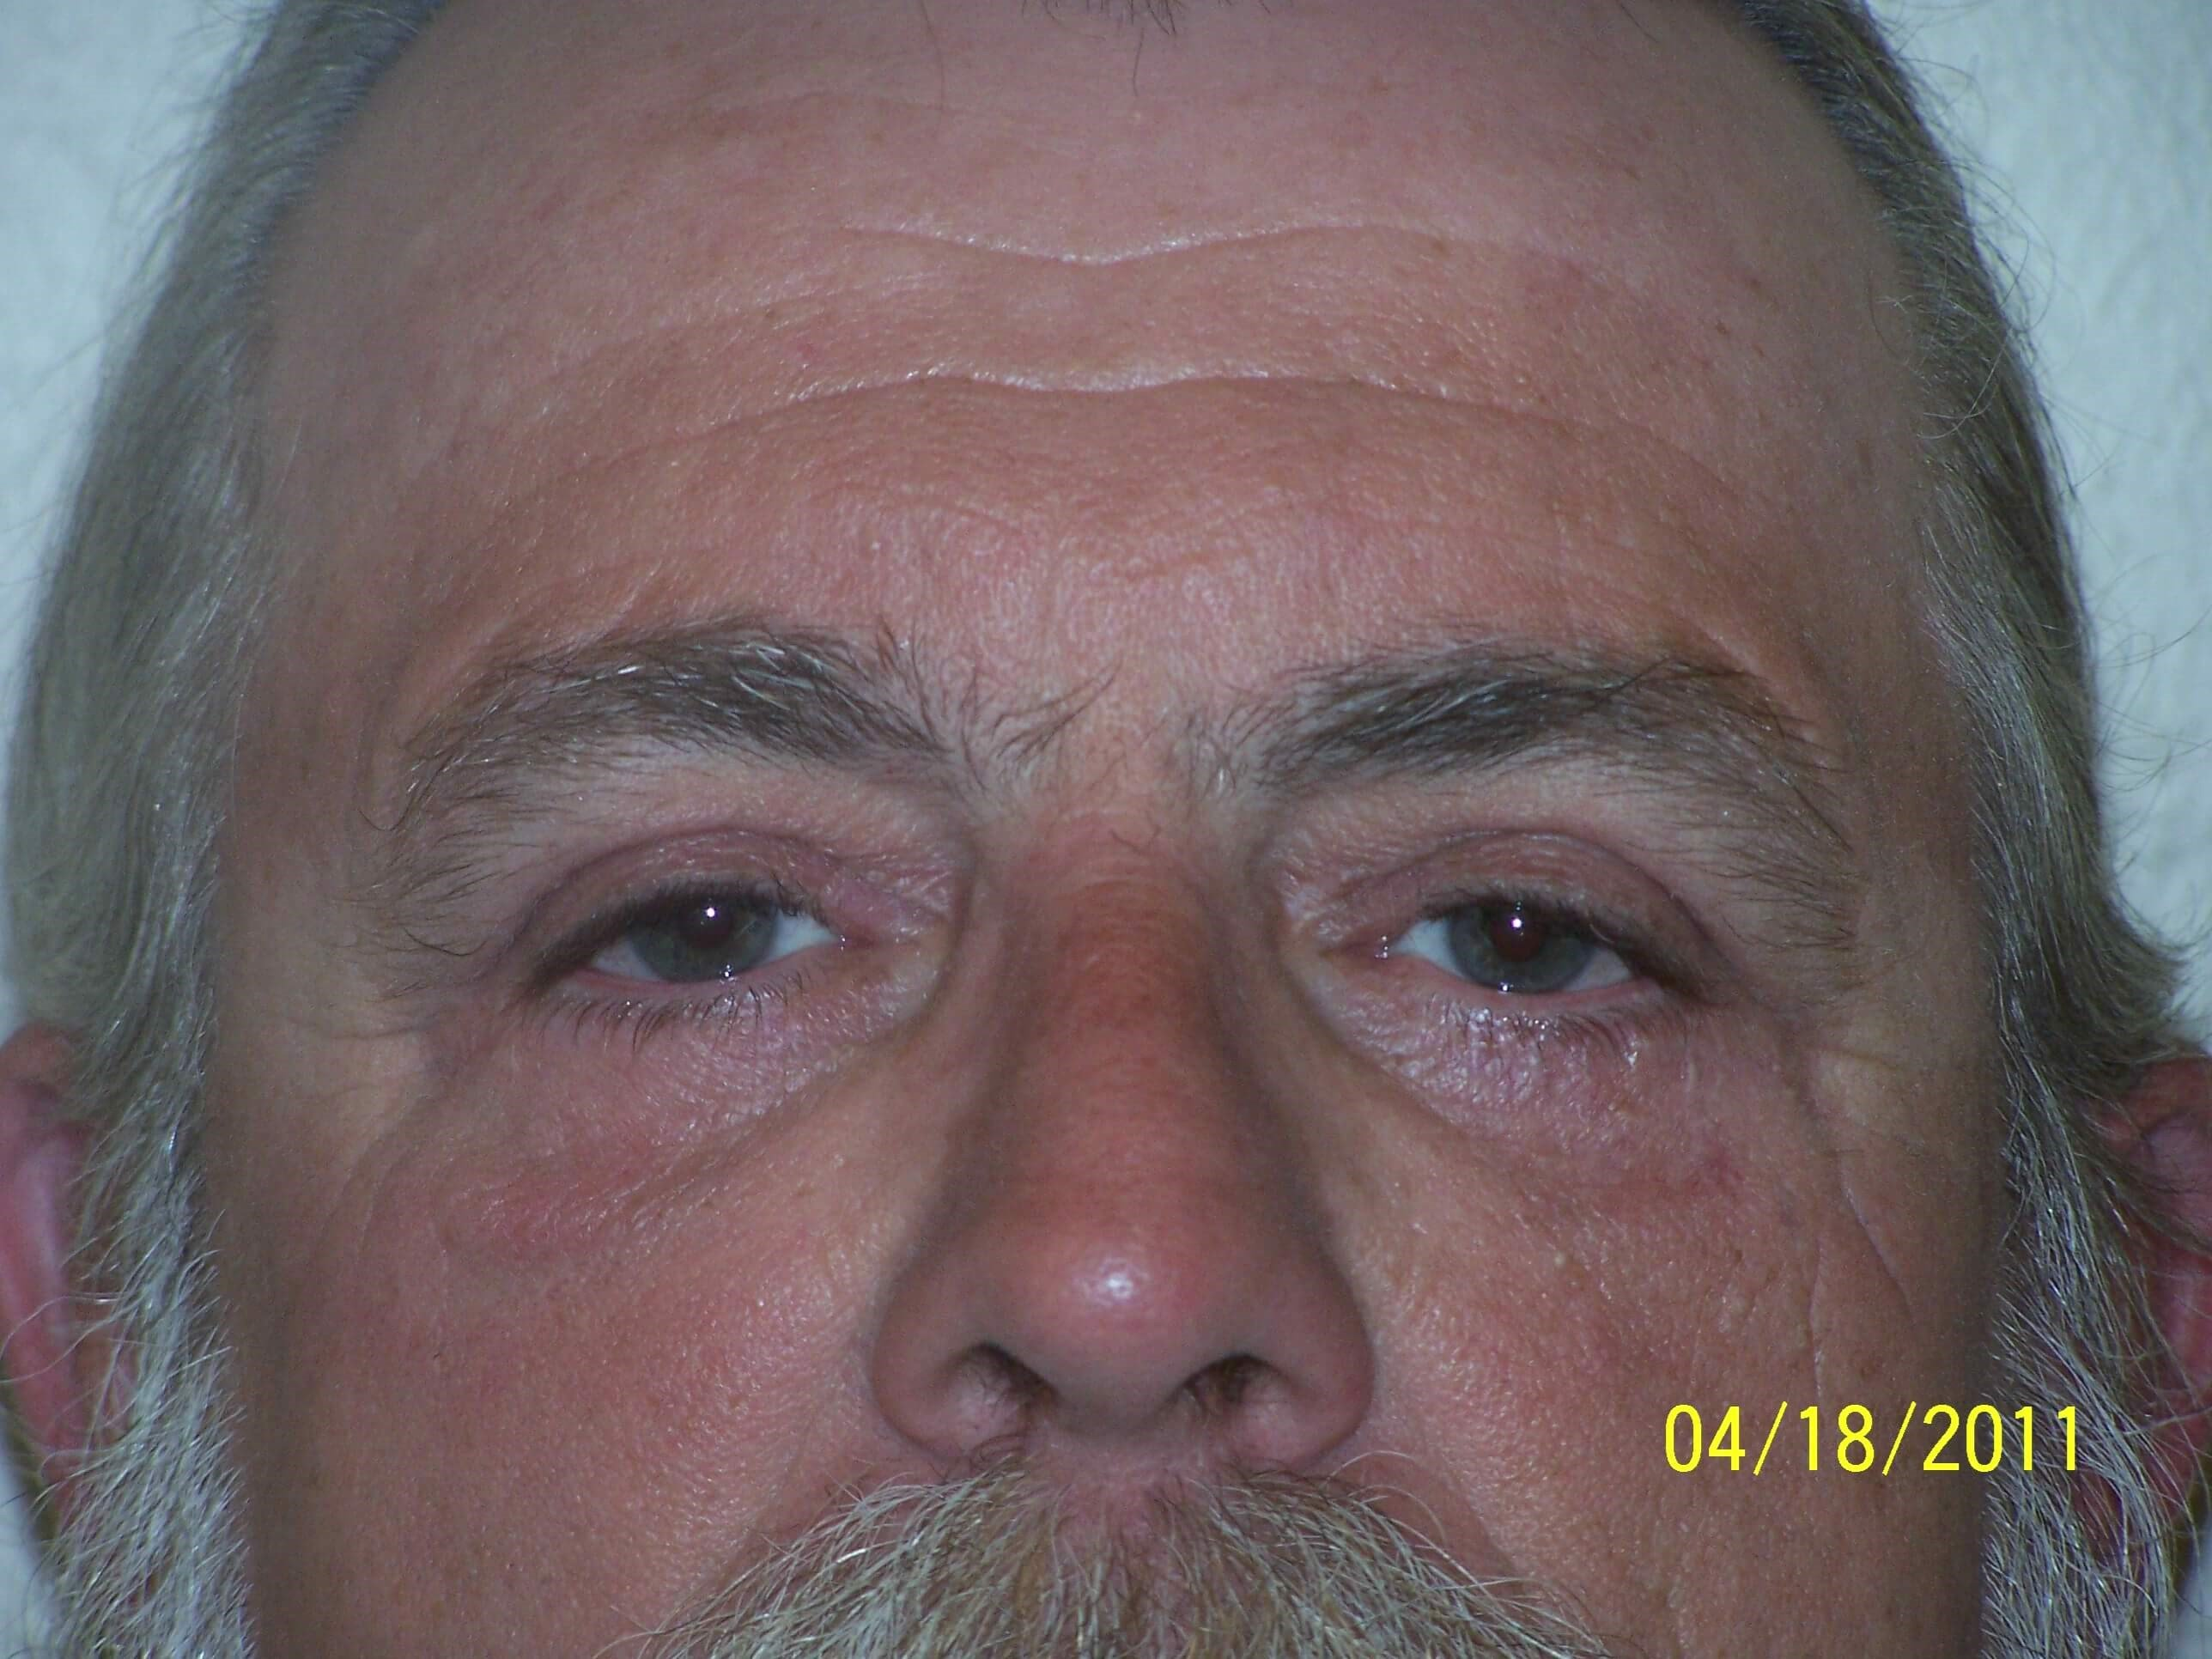 Dr. Sumpter eyelid surgery After